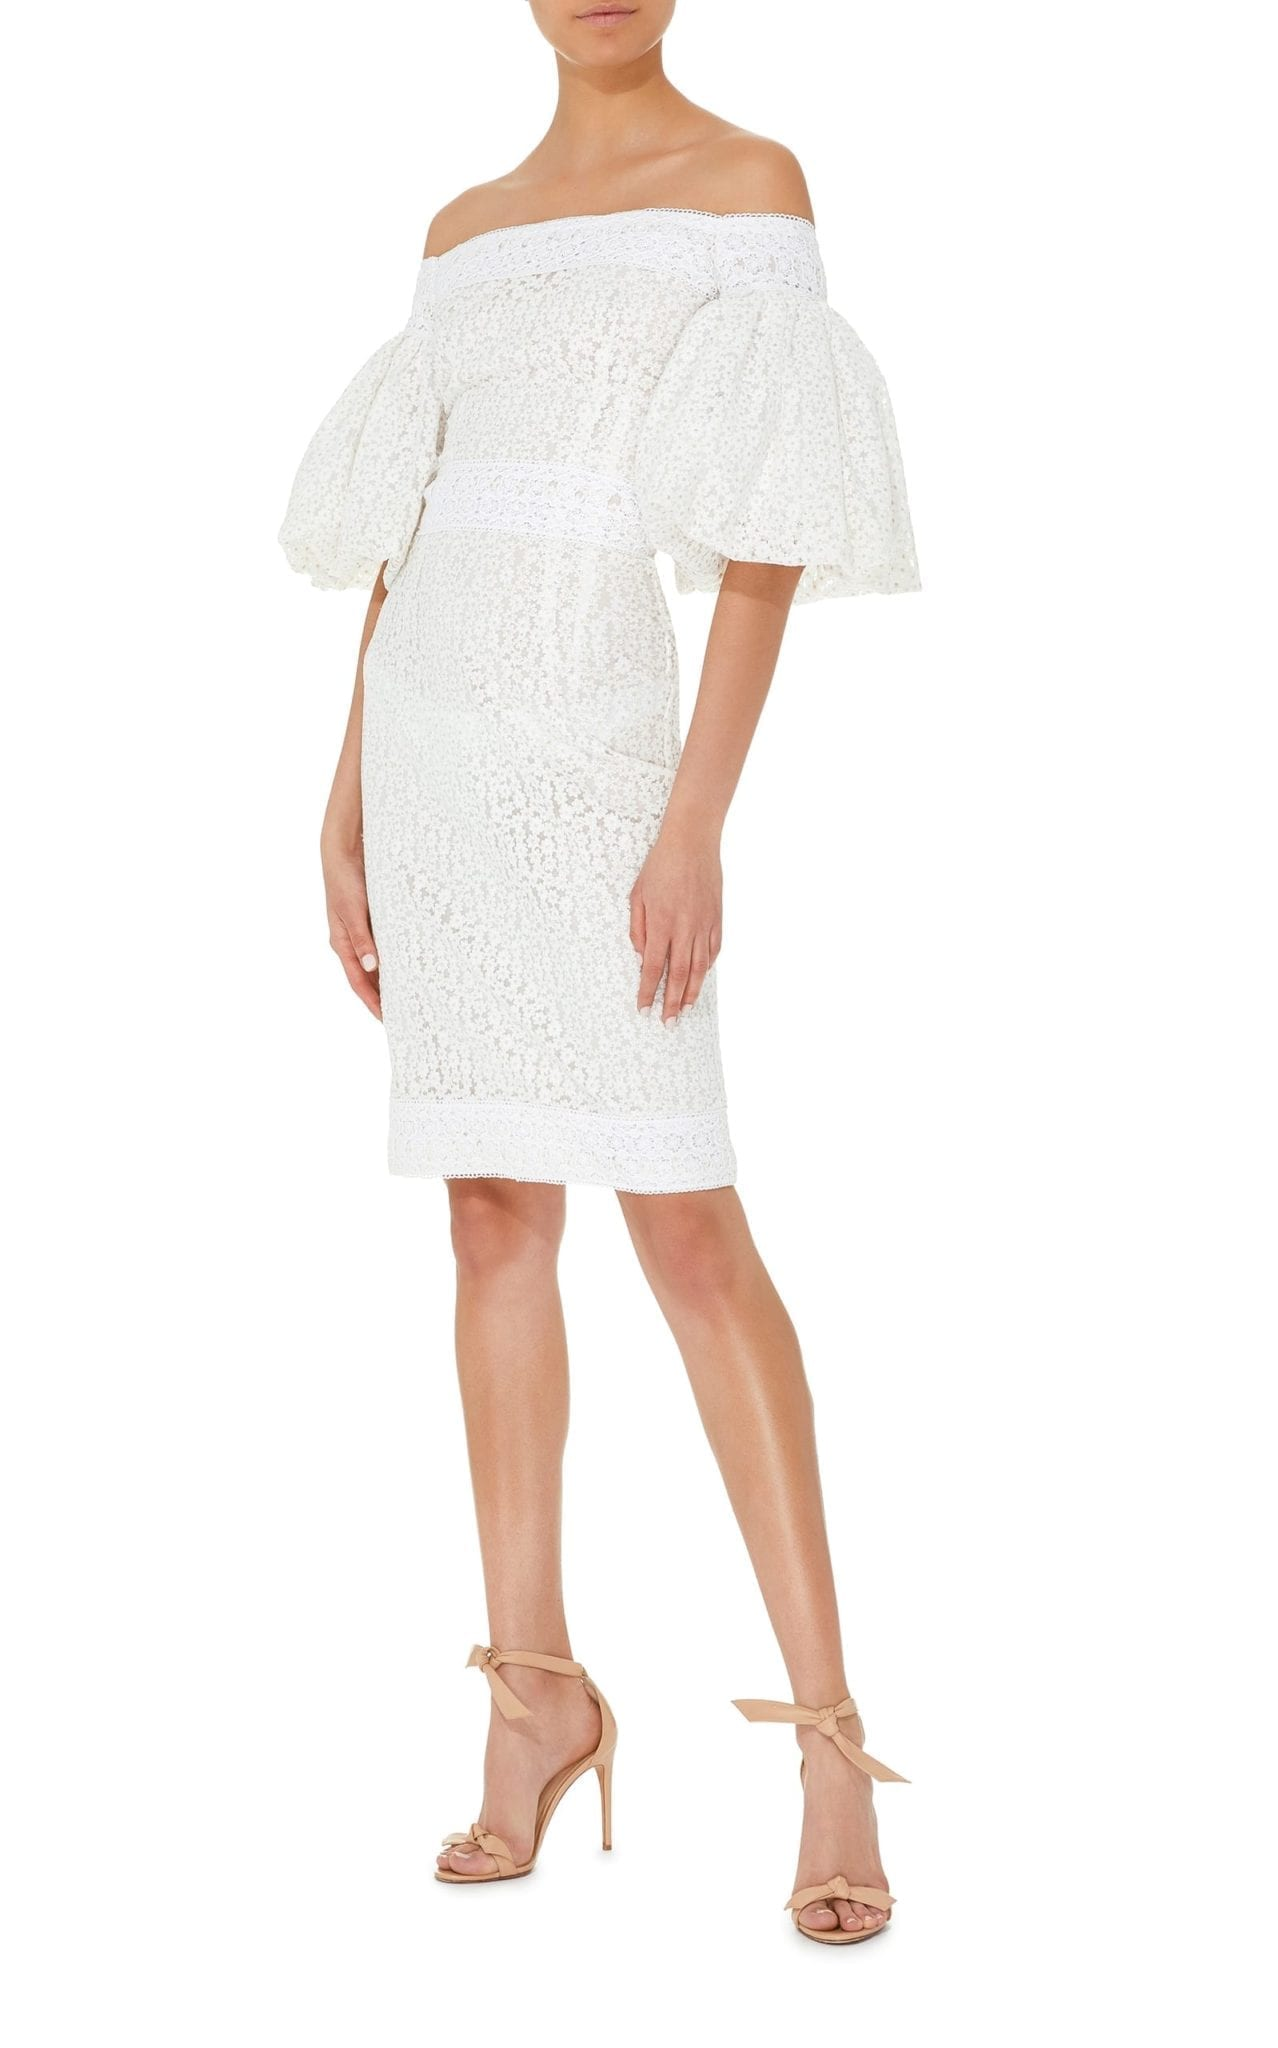 COSTARELLOS Off The Shoulder Sheath White Dress